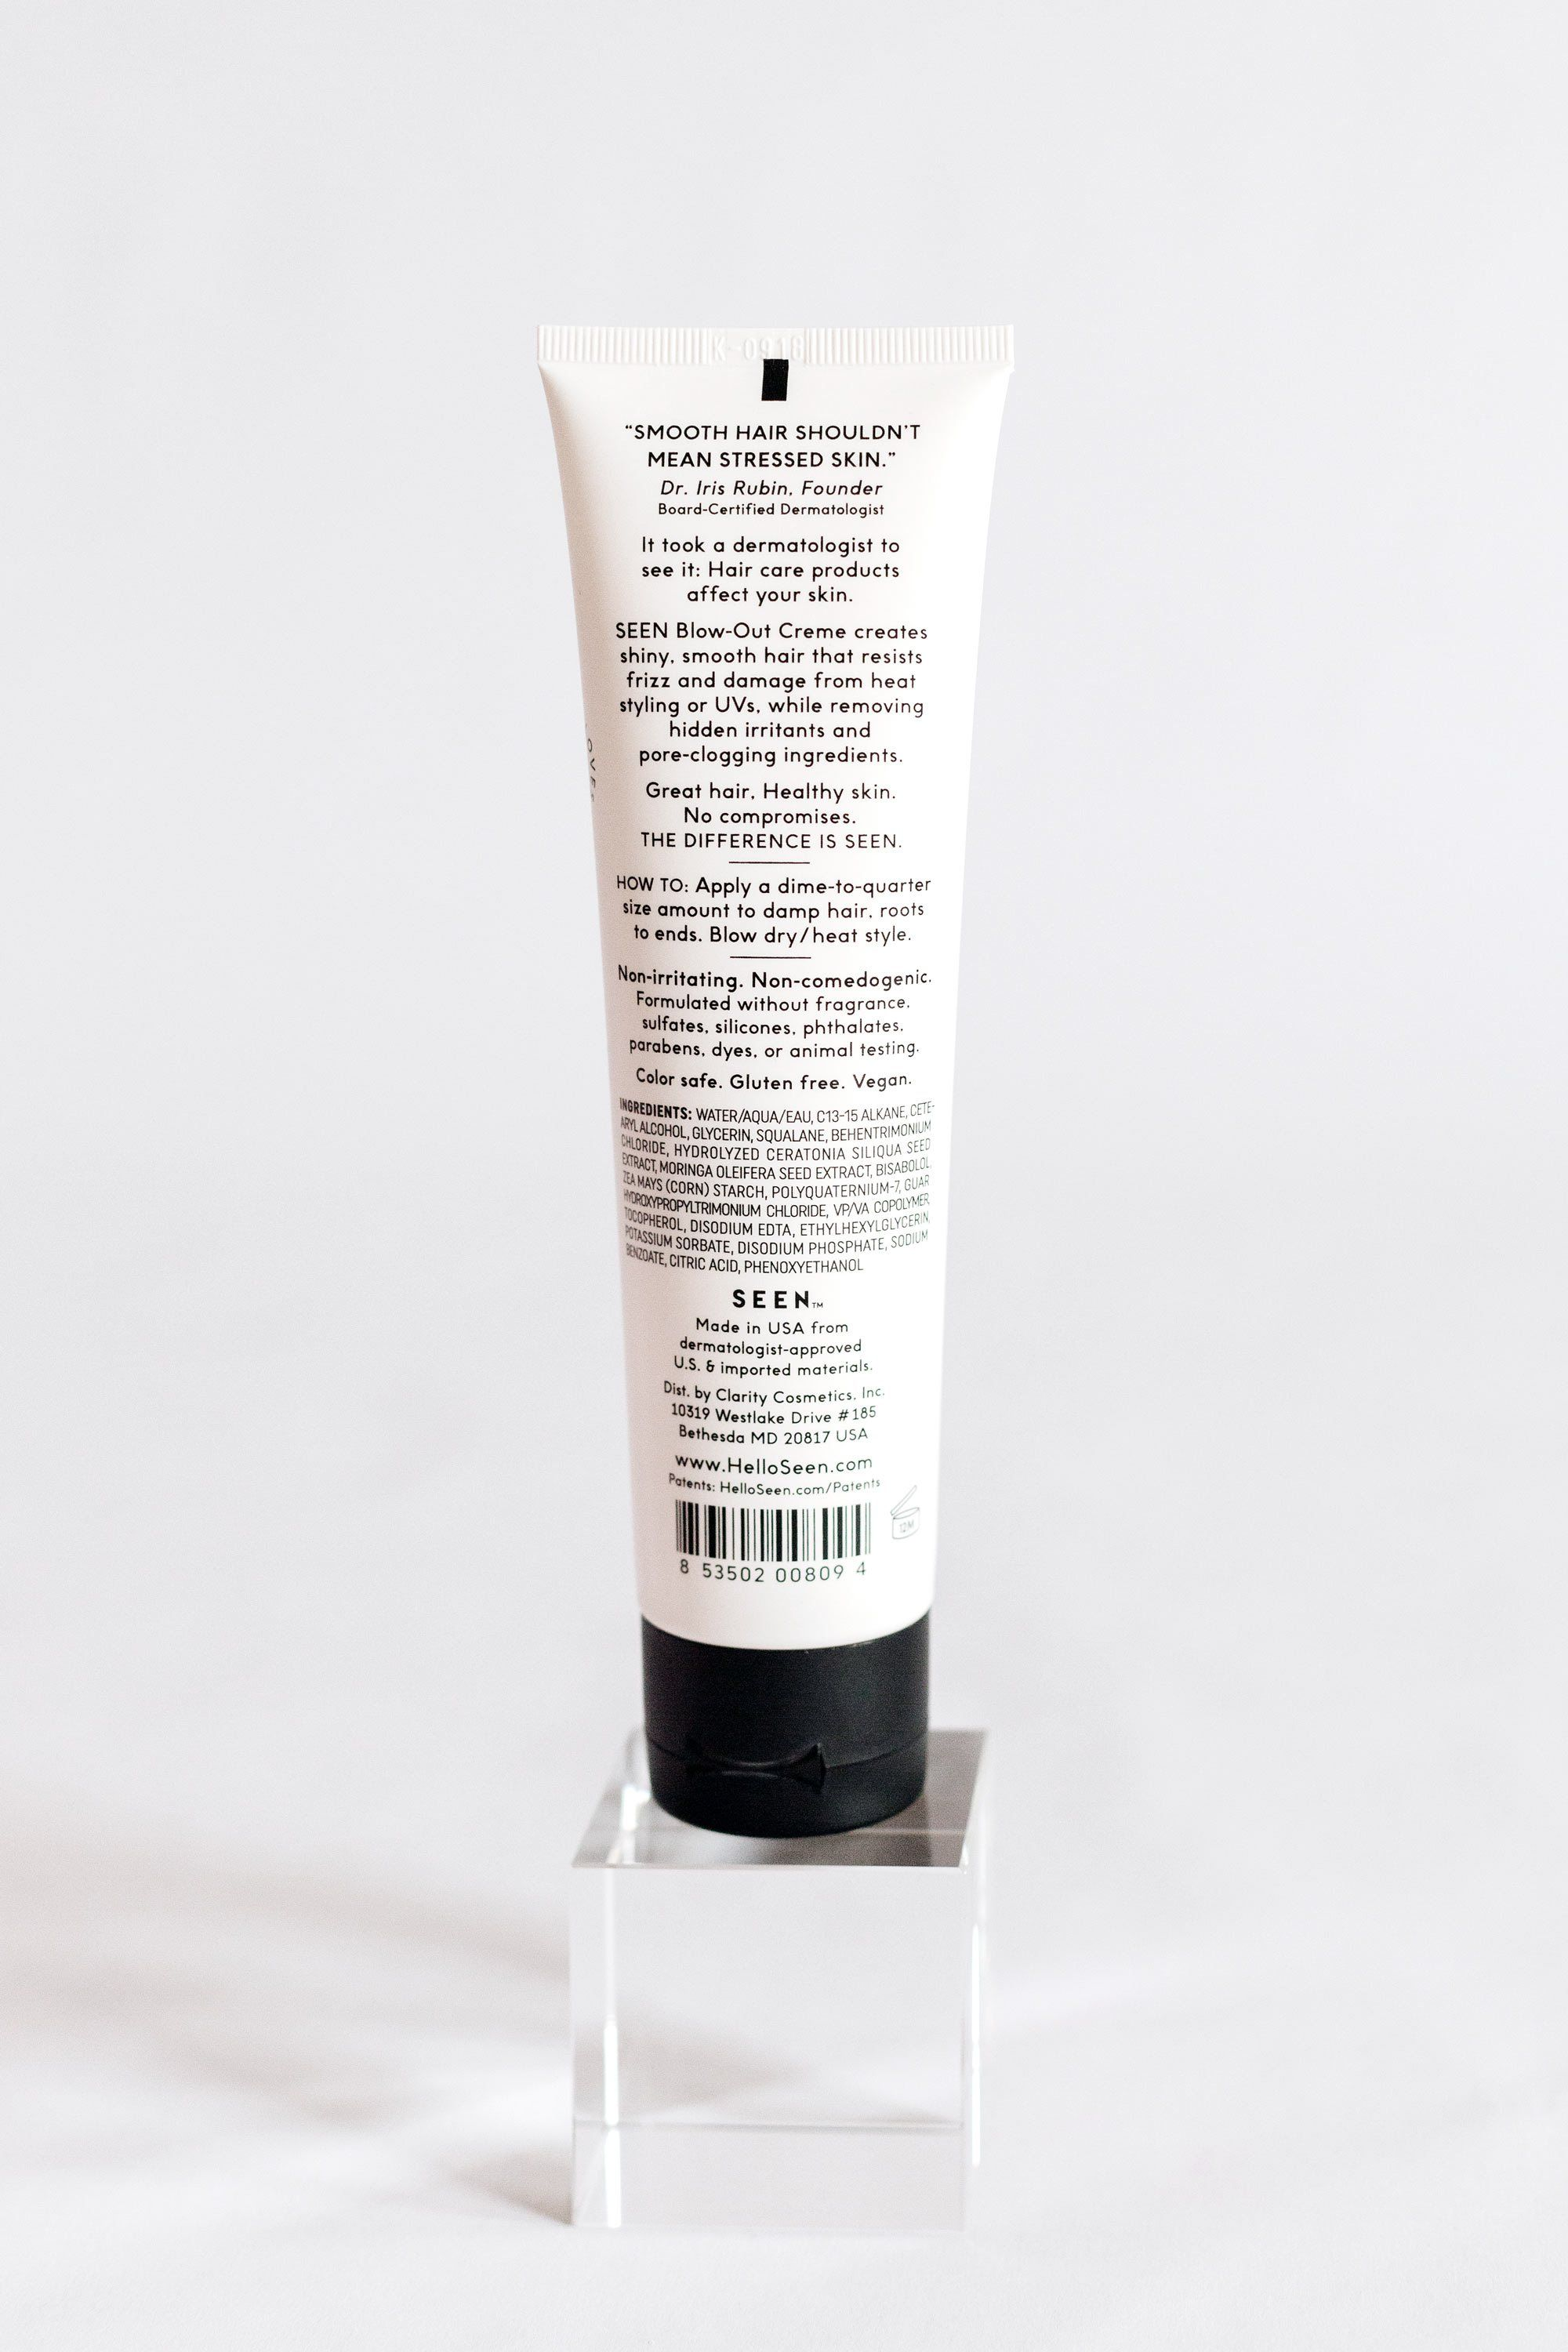 SEEN Blow-Out Creme, Fragrance Free